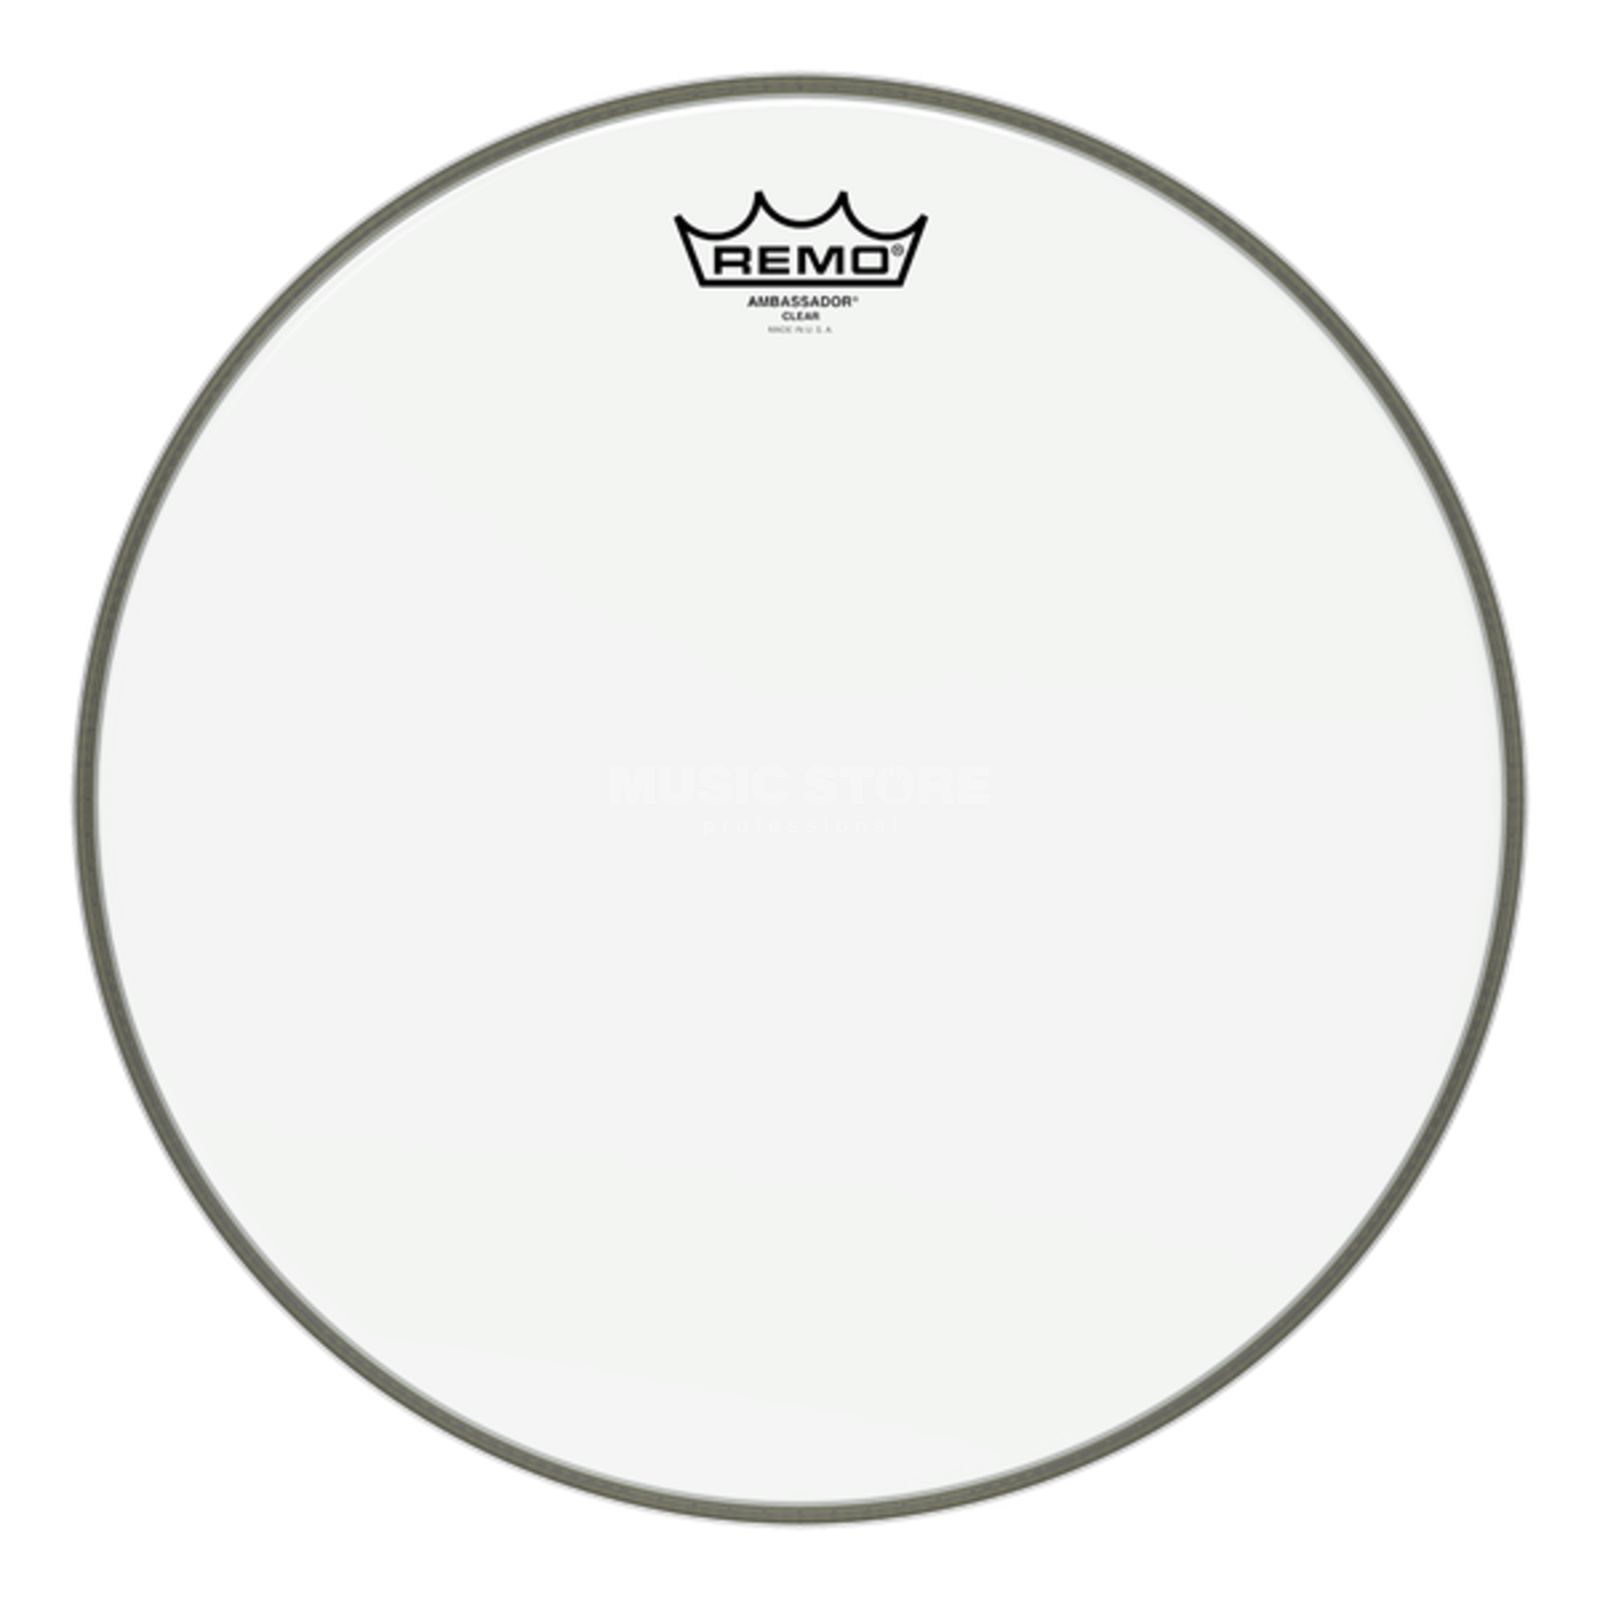 "Remo Ambassador Clear 16"", Tom Batter/Reso Product Image"